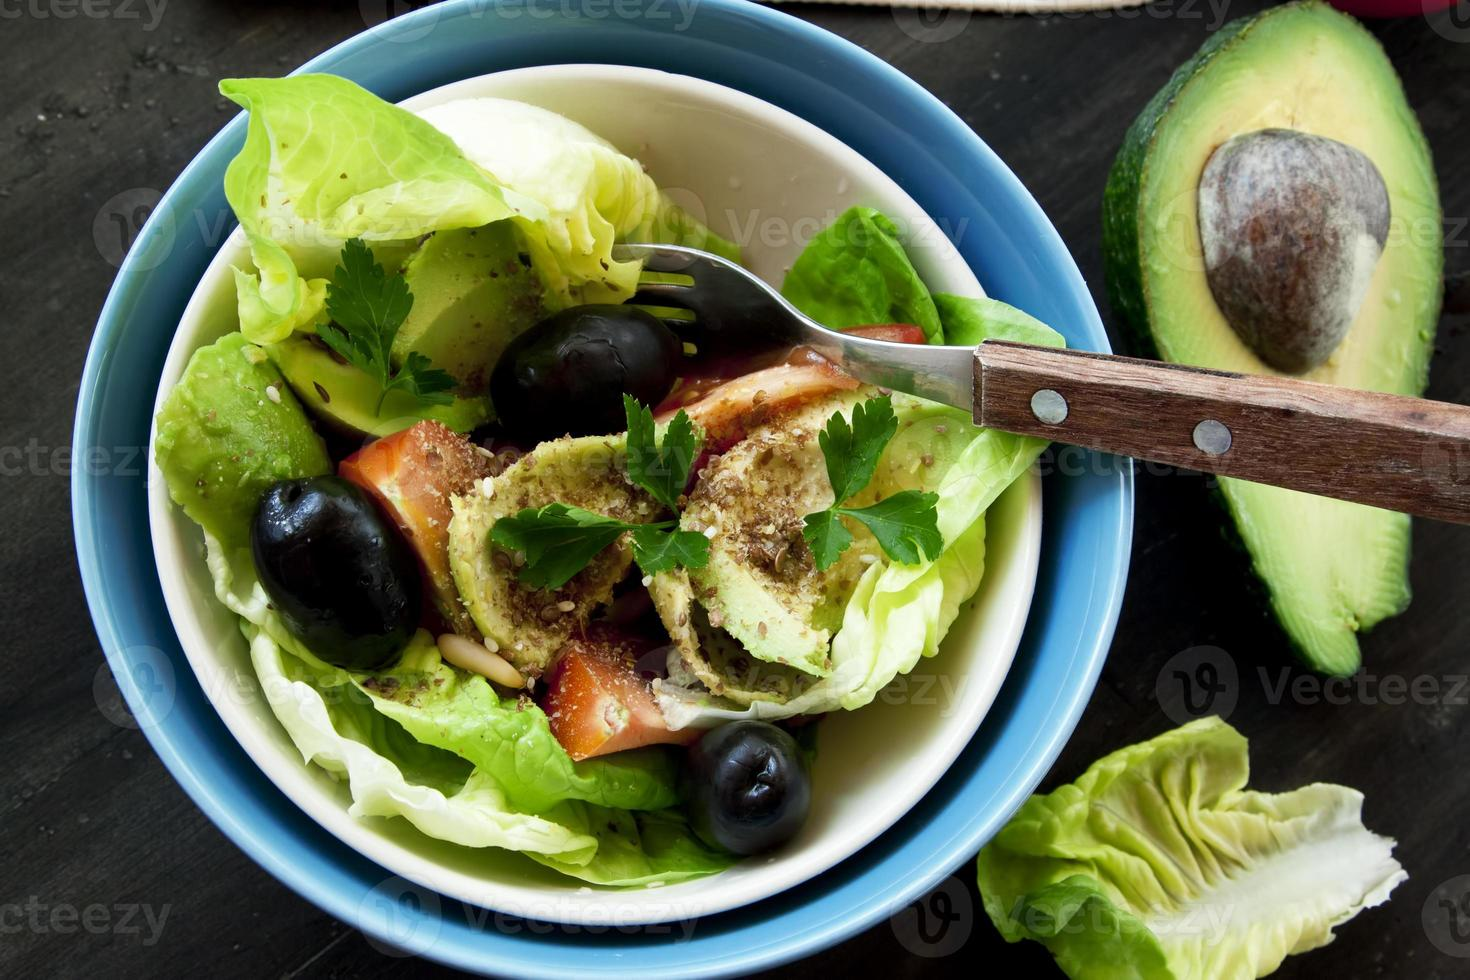 Avocado Salad with Seeds and Vegetables photo